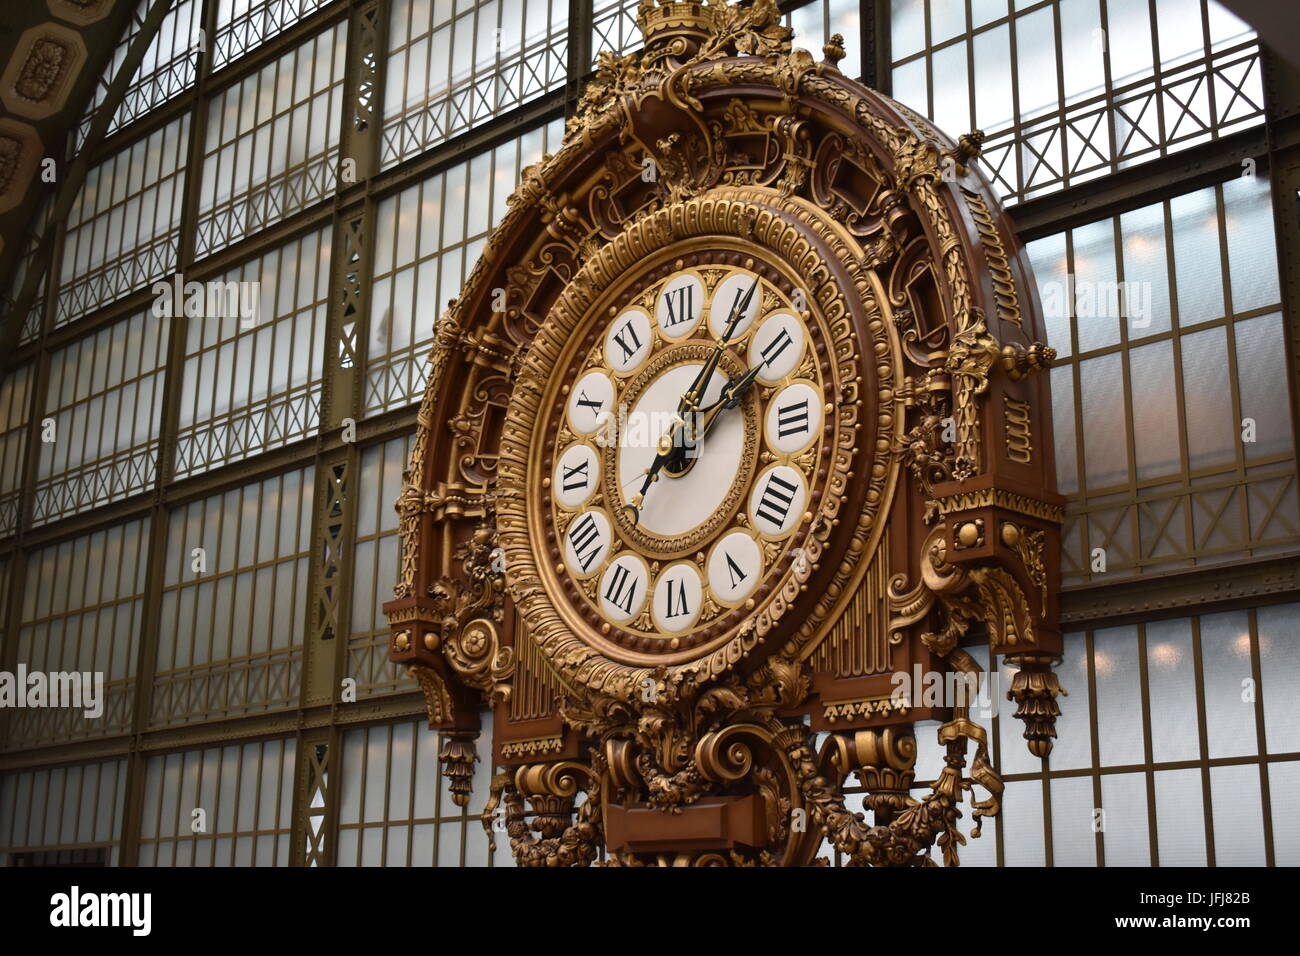 old train station clock in the musee de orsay in paris france stock photo royalty free image. Black Bedroom Furniture Sets. Home Design Ideas